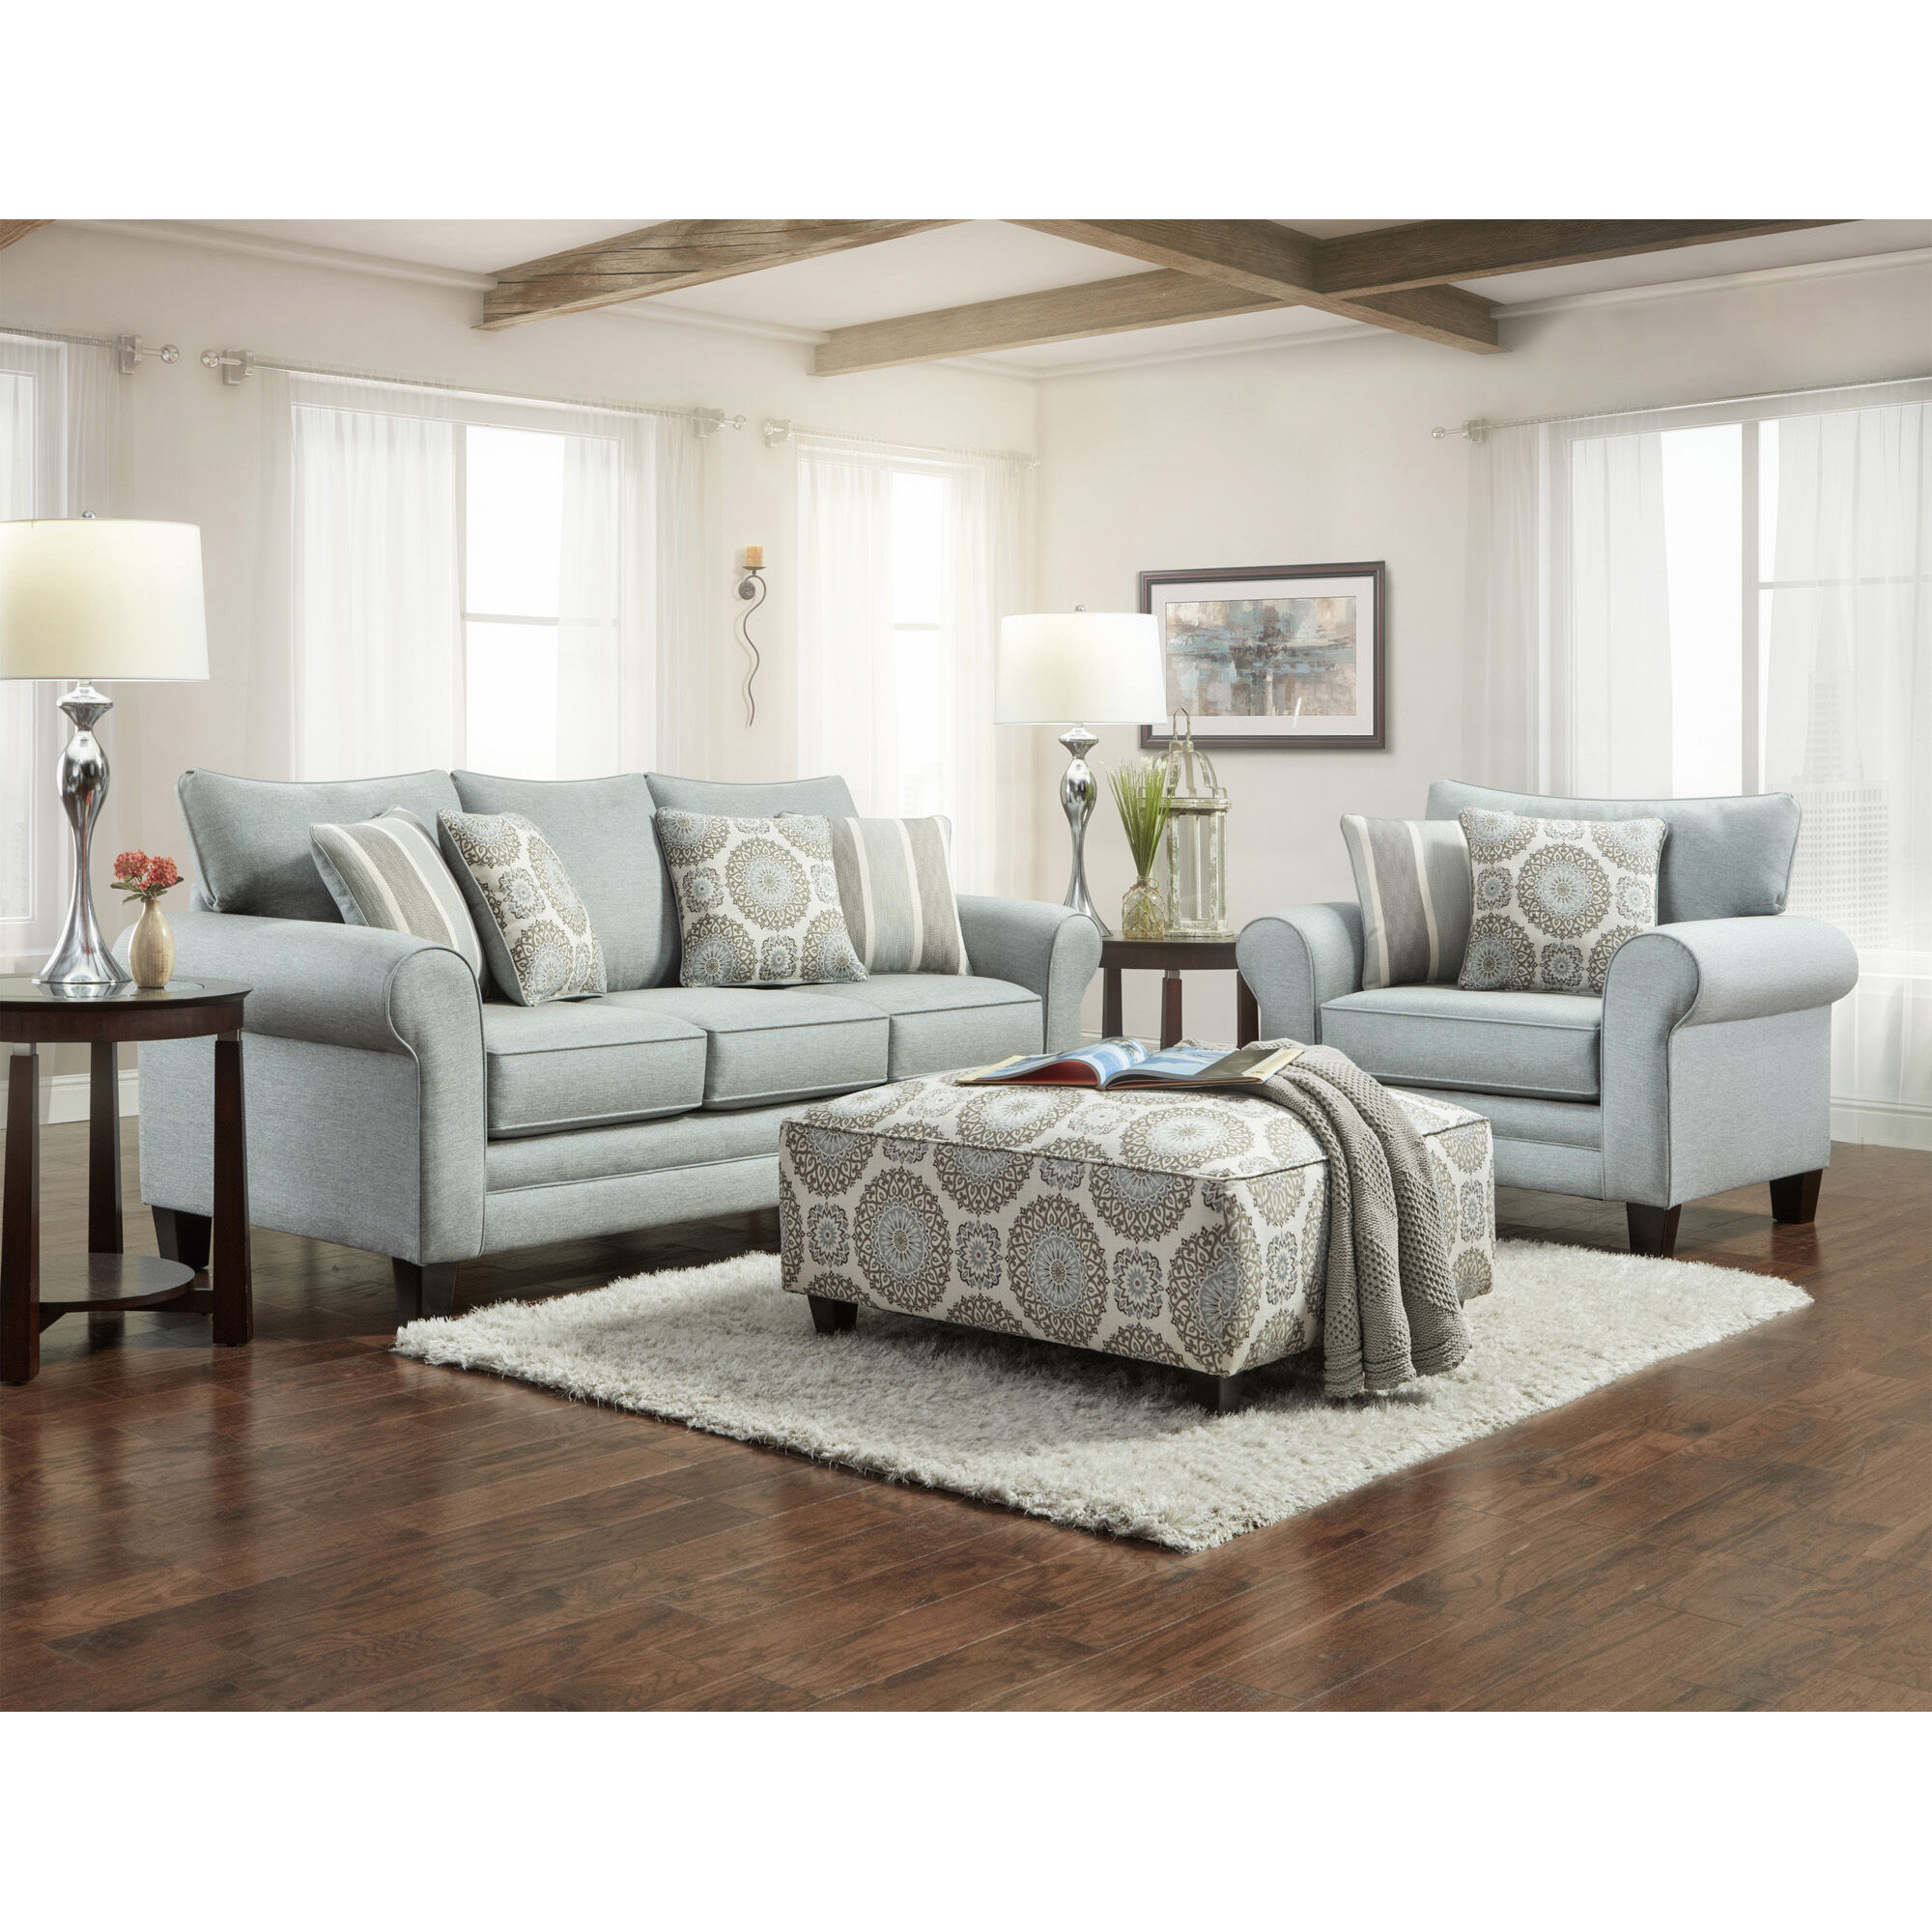 living room tables at aaron s best paint colors for small rooms fusion furniture sets 3 piece lara collection with chair